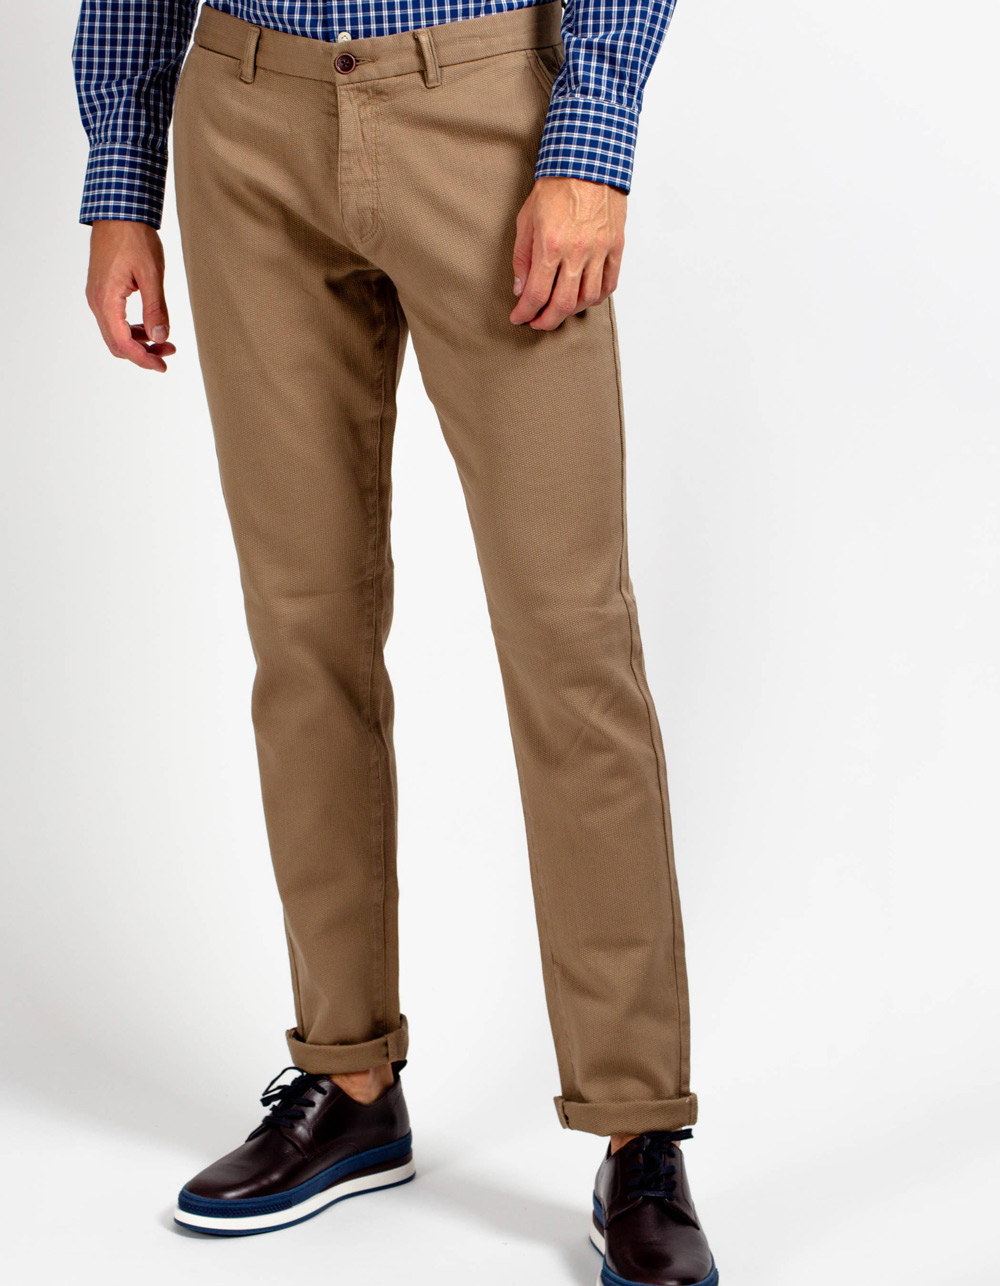 Beige micro-structure pant.